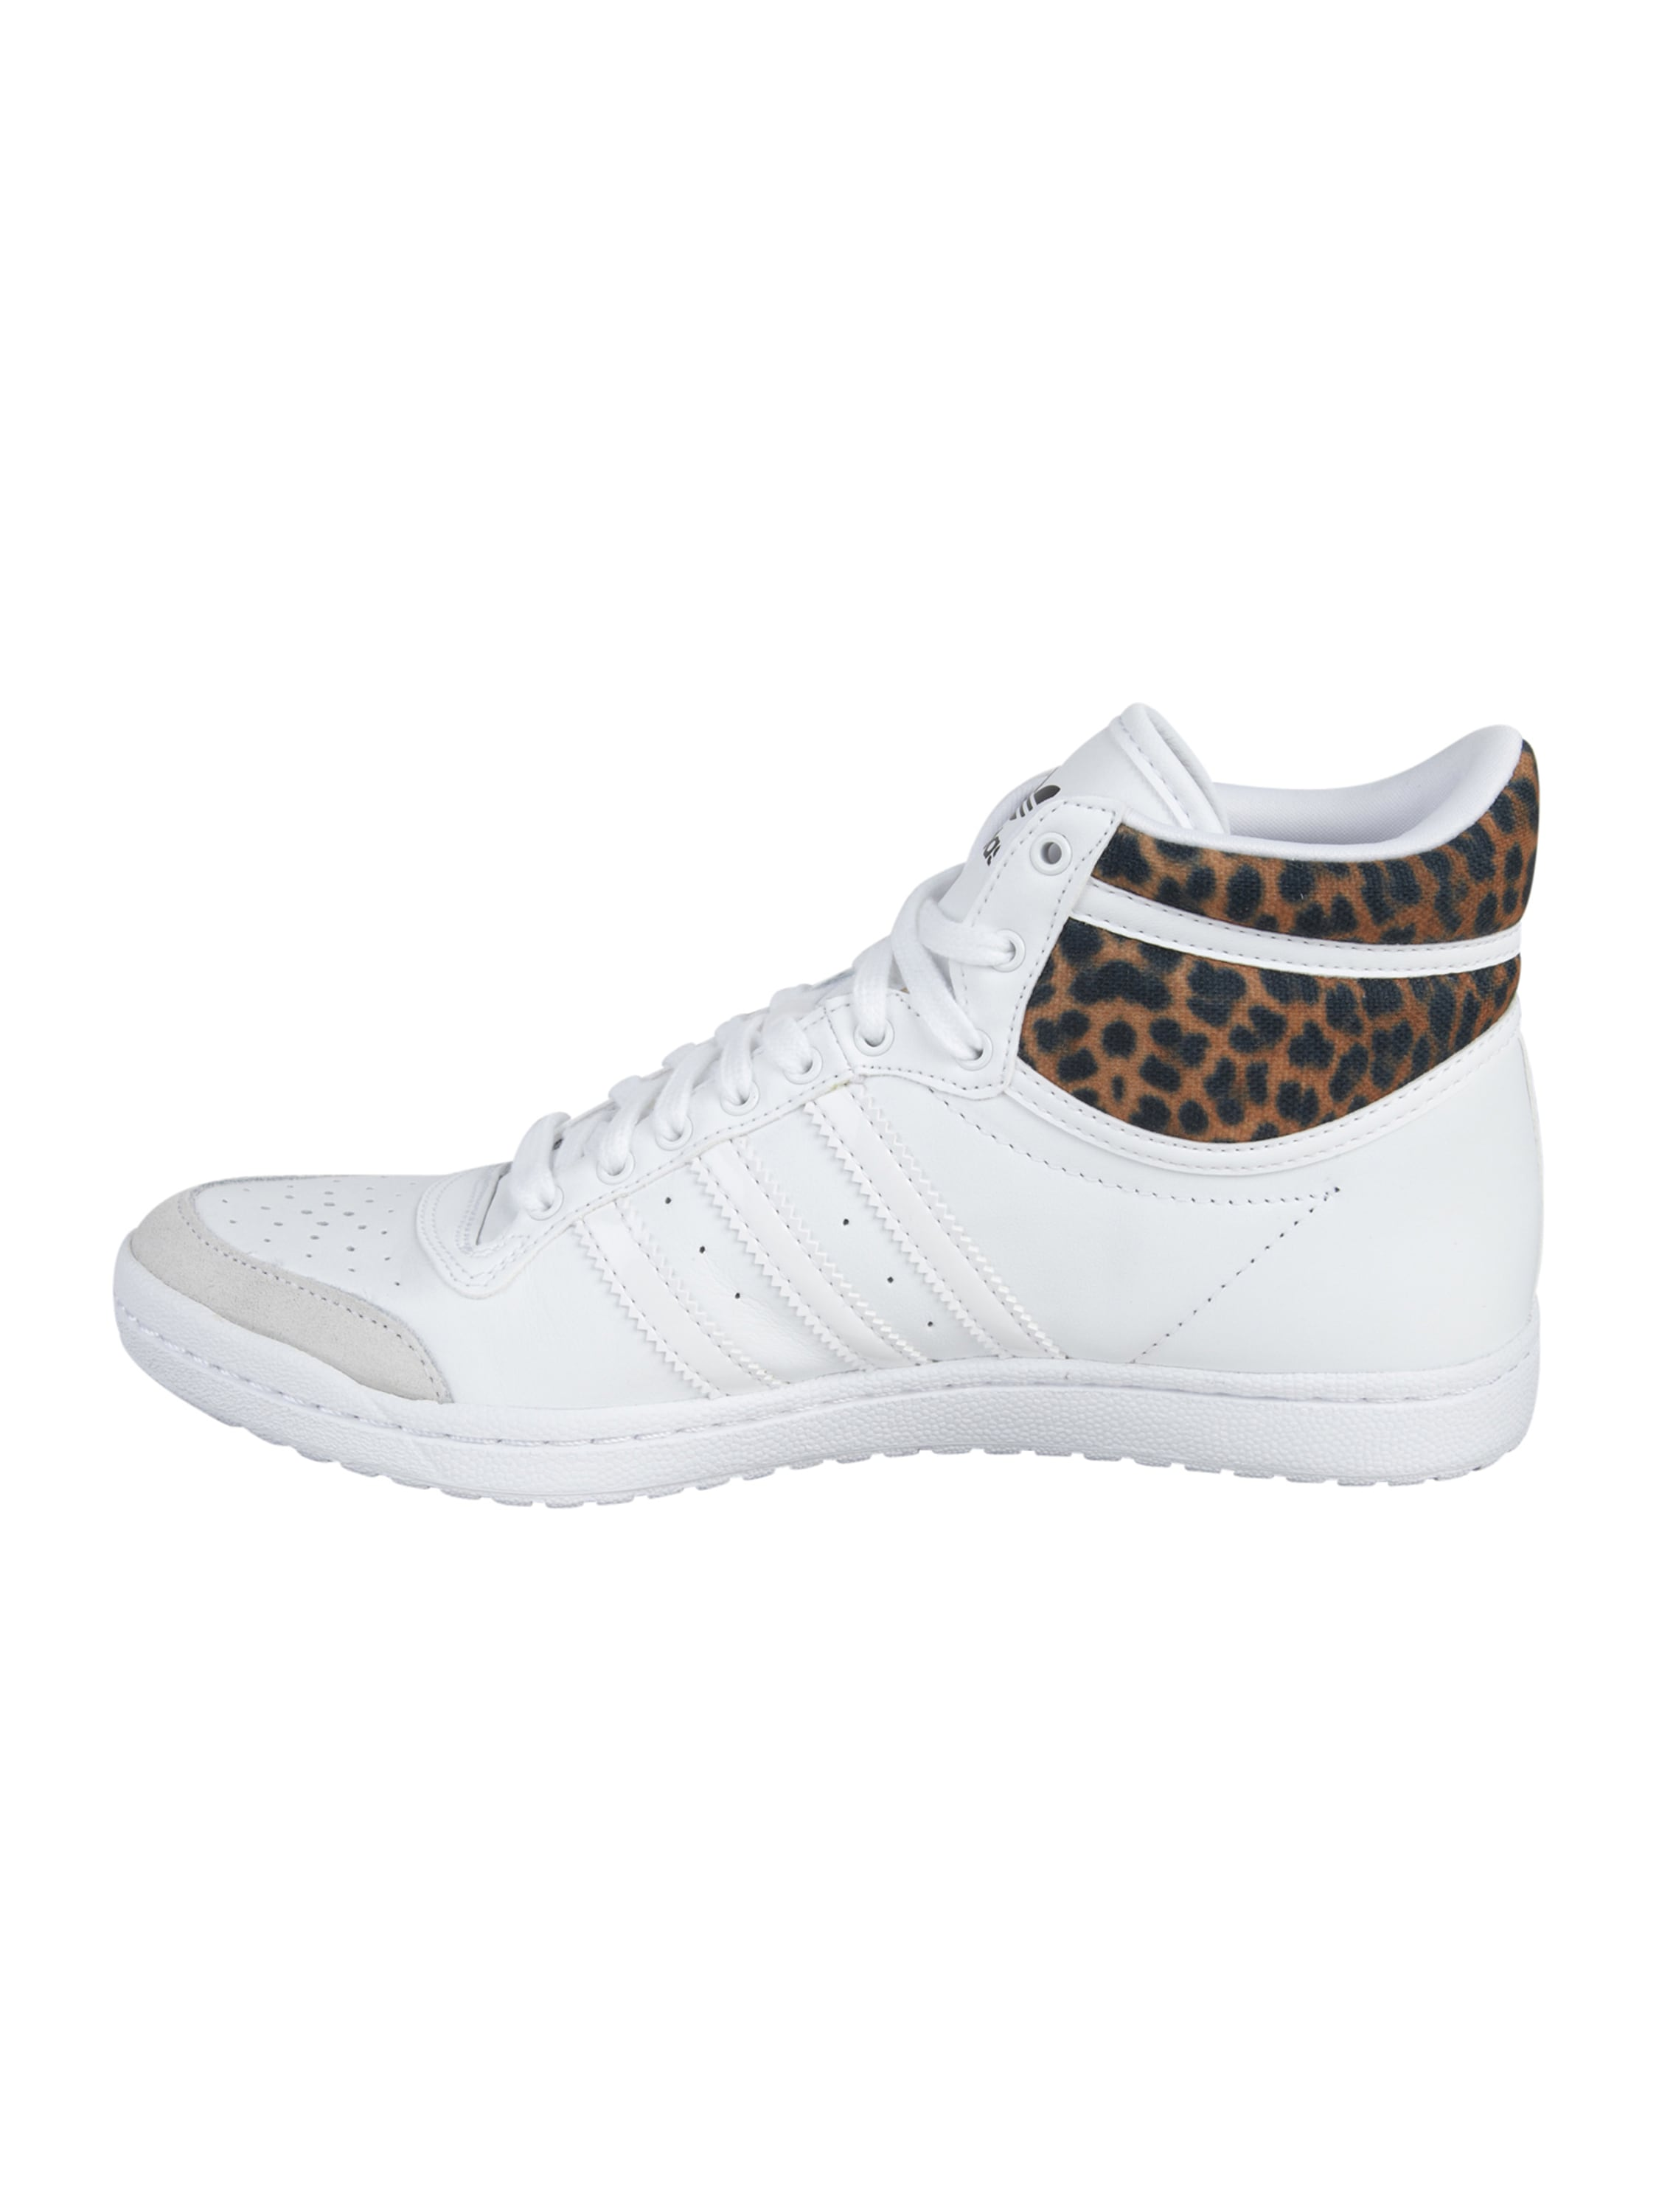 sneakers mit leopardenmuster fashion id online shop. Black Bedroom Furniture Sets. Home Design Ideas